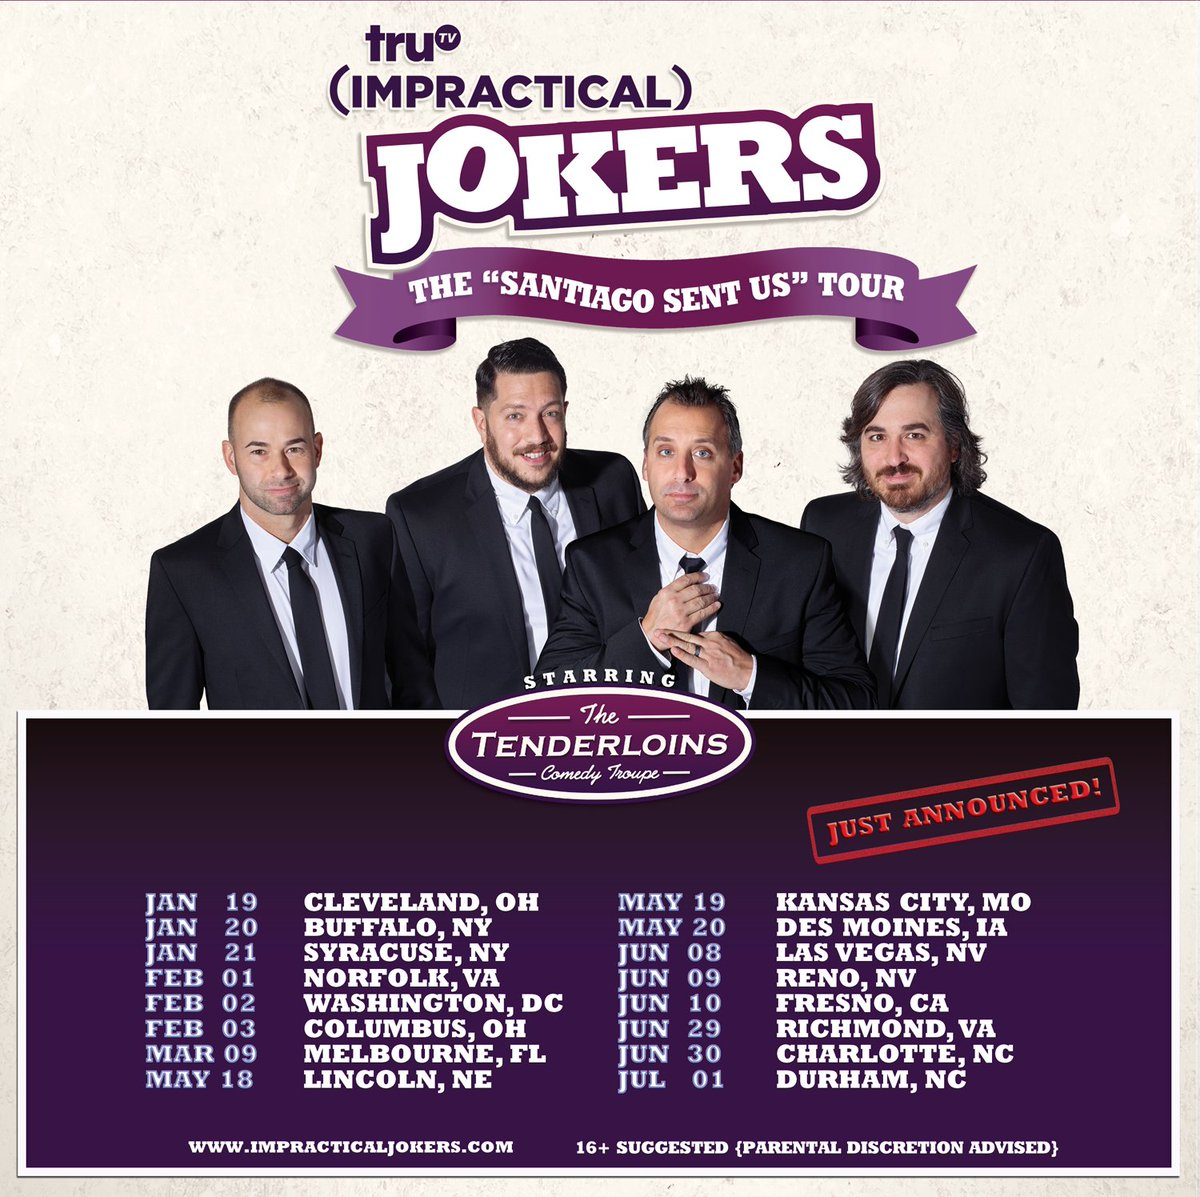 Impractical jokers tour dates in Melbourne